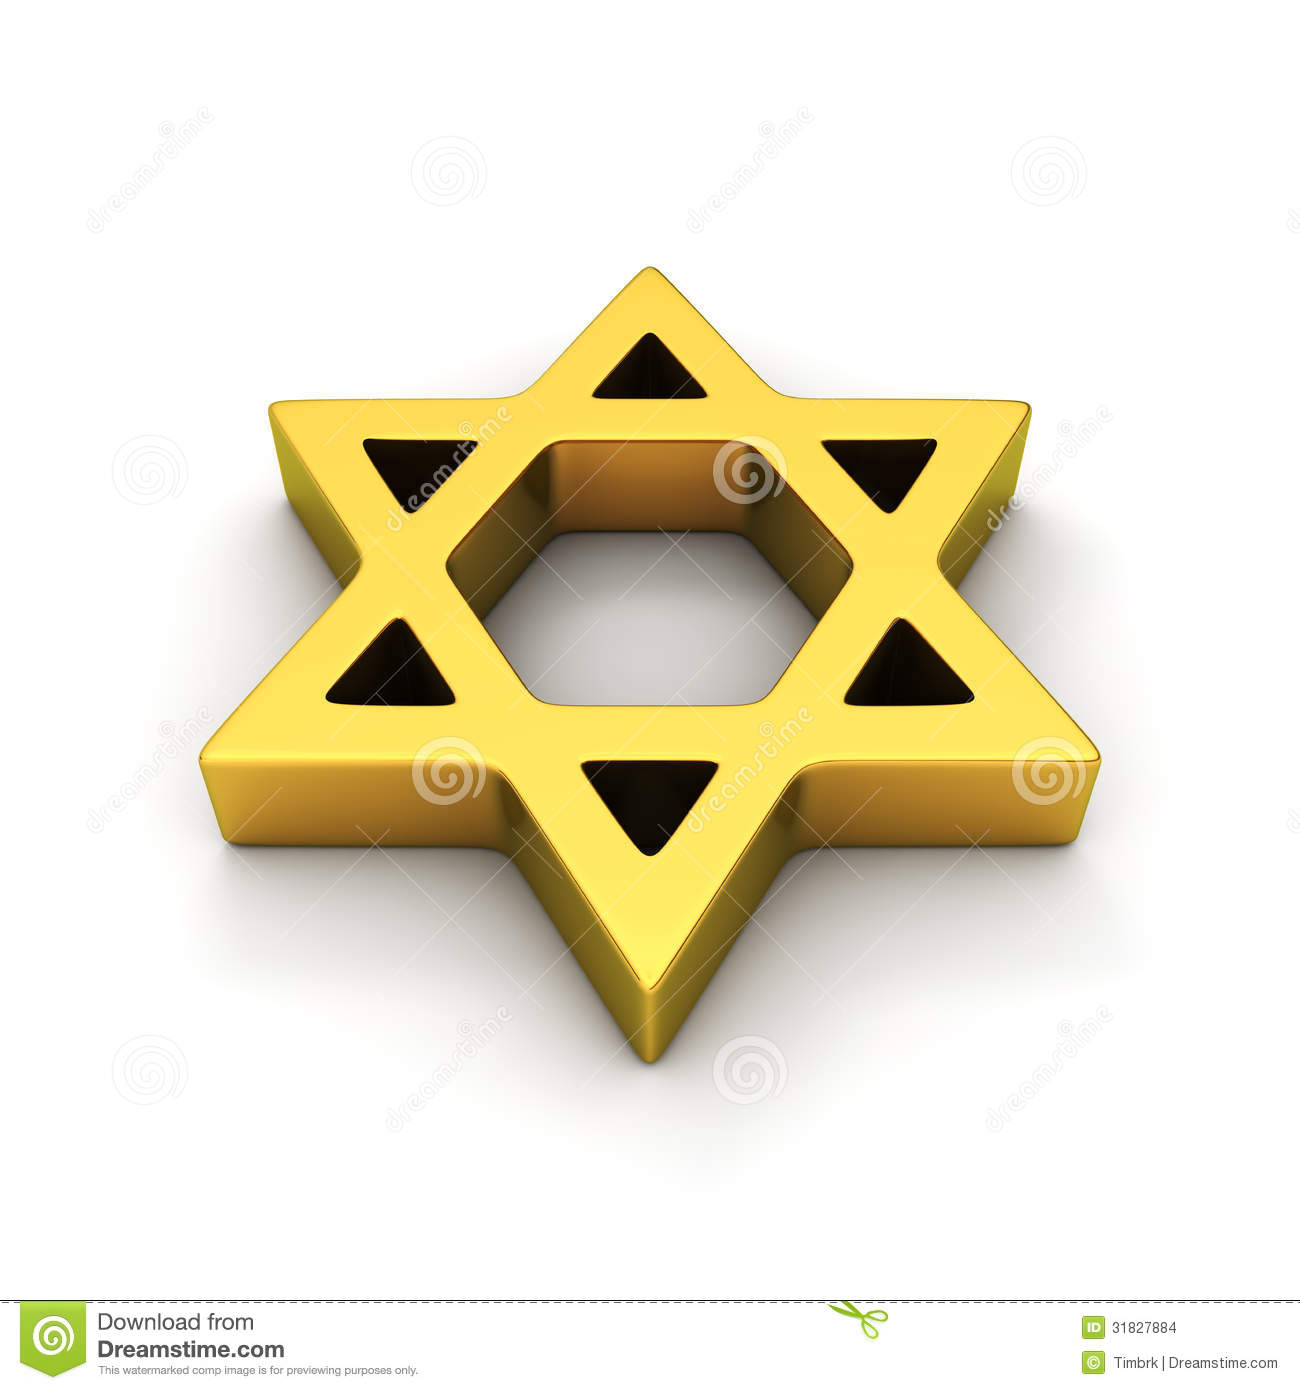 star junction jewish single men The star of bethlehem  about jewish happenings around the time  to be confused as a single object, the word ``star'' had a different meaning to.